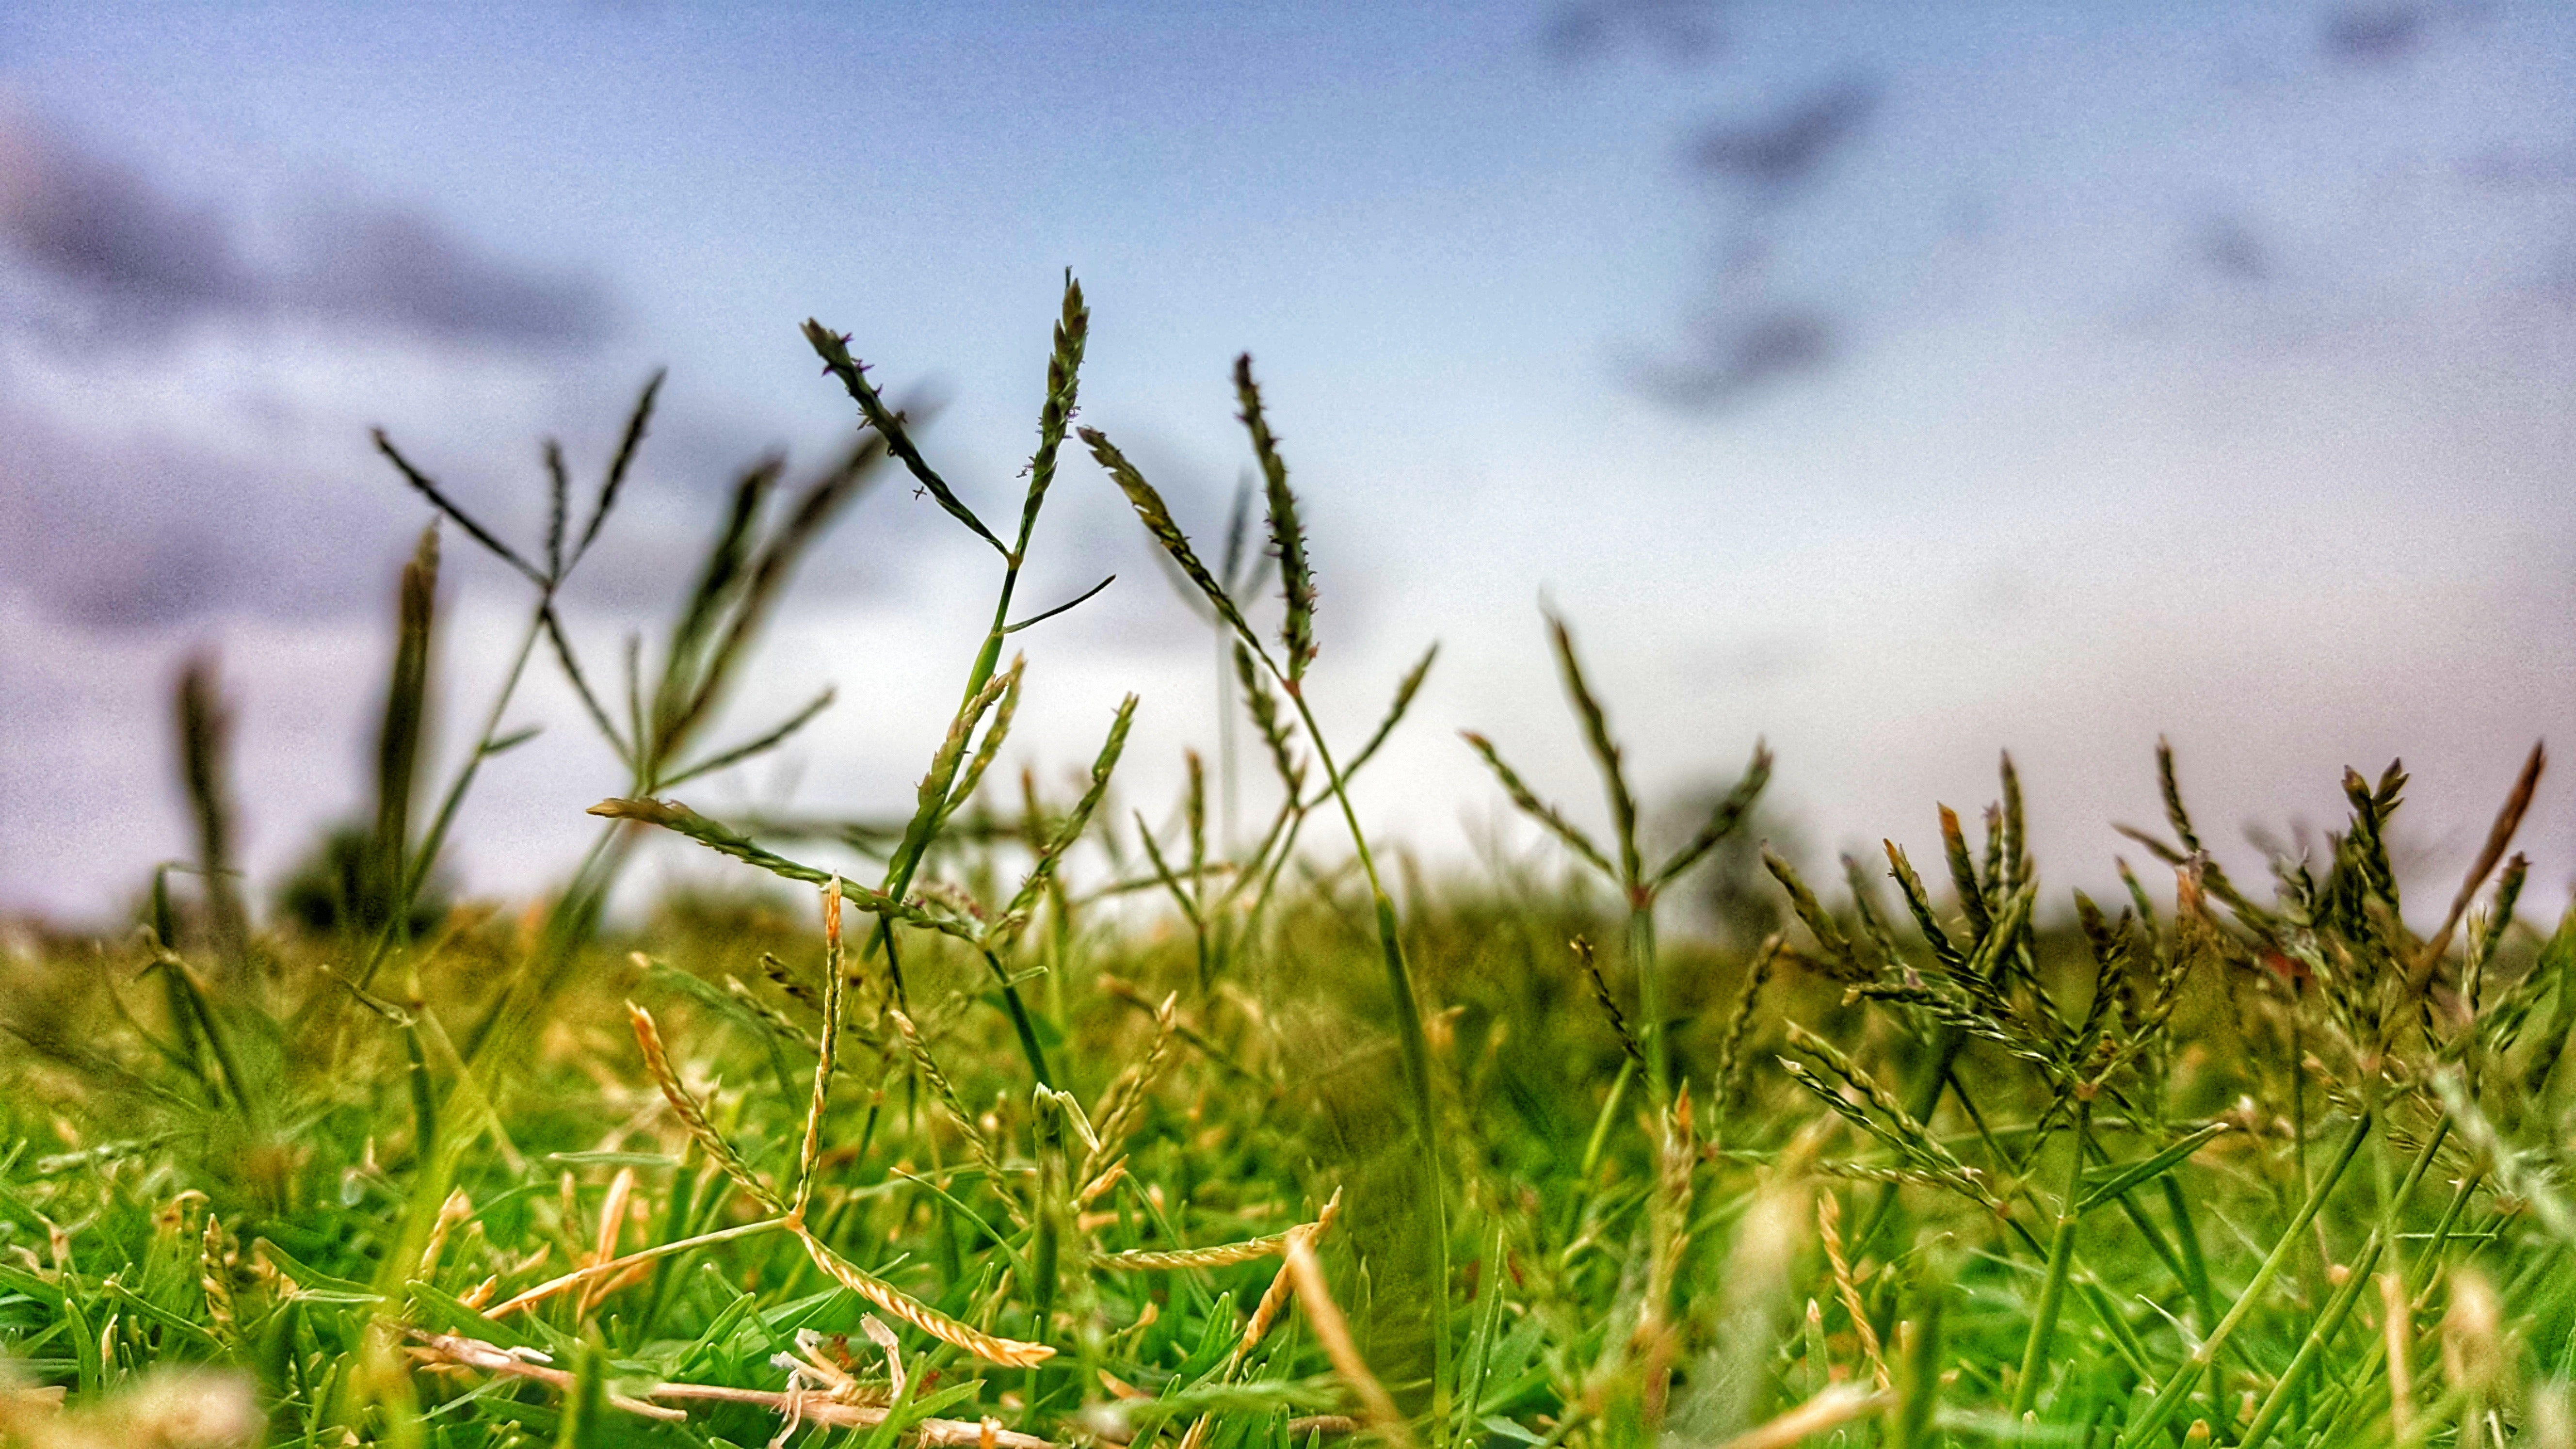 Close-up Photography of Grass, Blur, Close-up, Clouds, Cloudy sky, HQ Photo